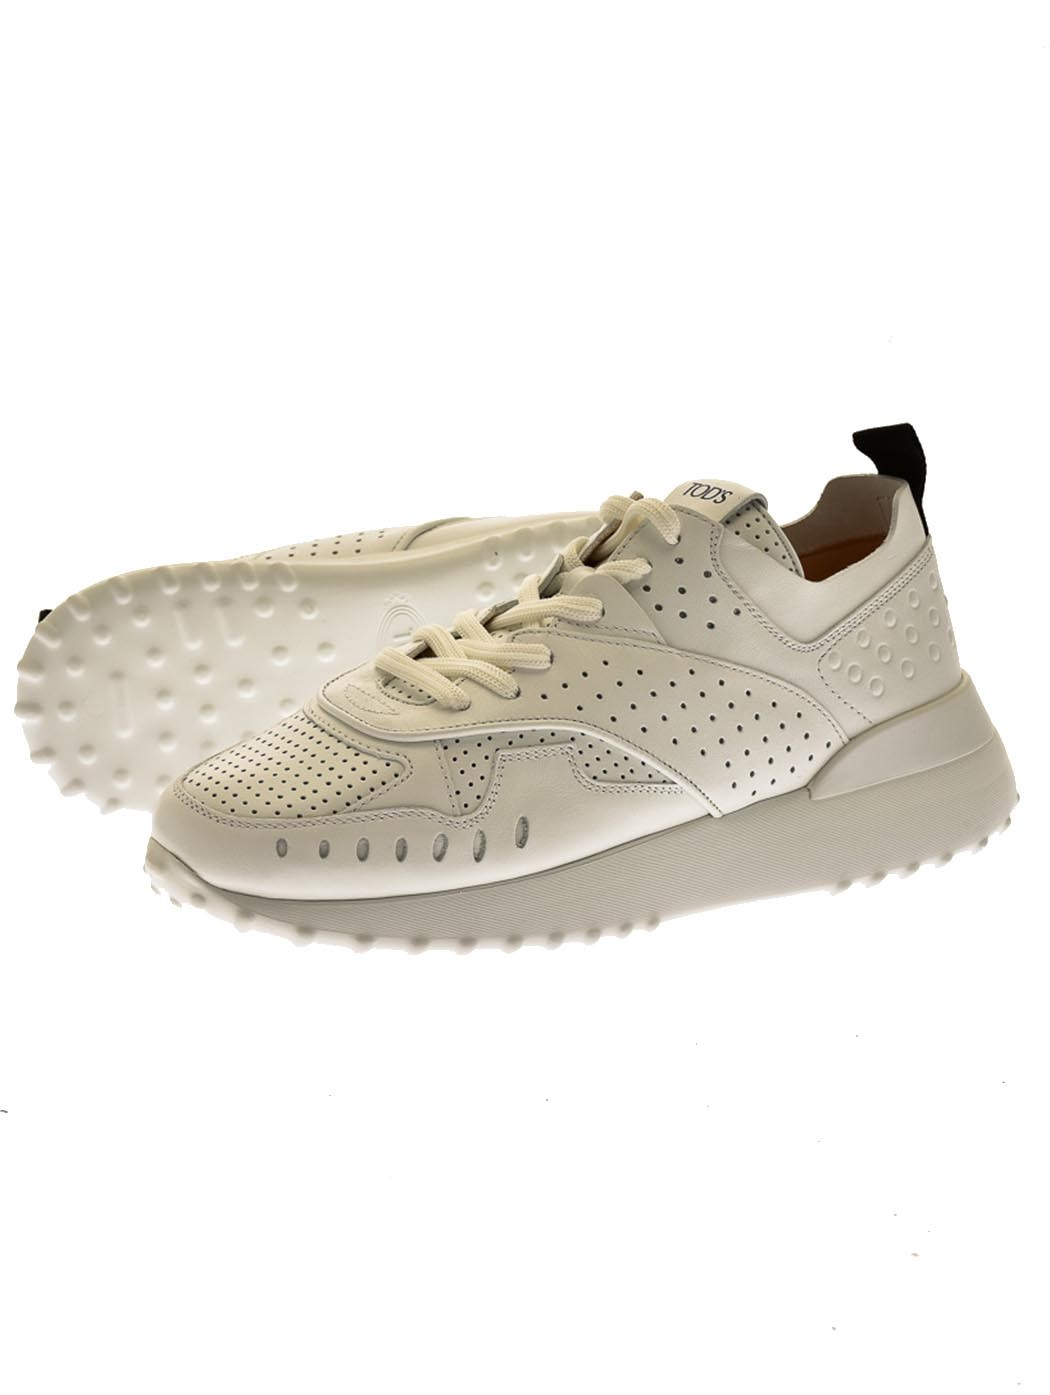 TODS XXW80A0 B001 SNEAKERS